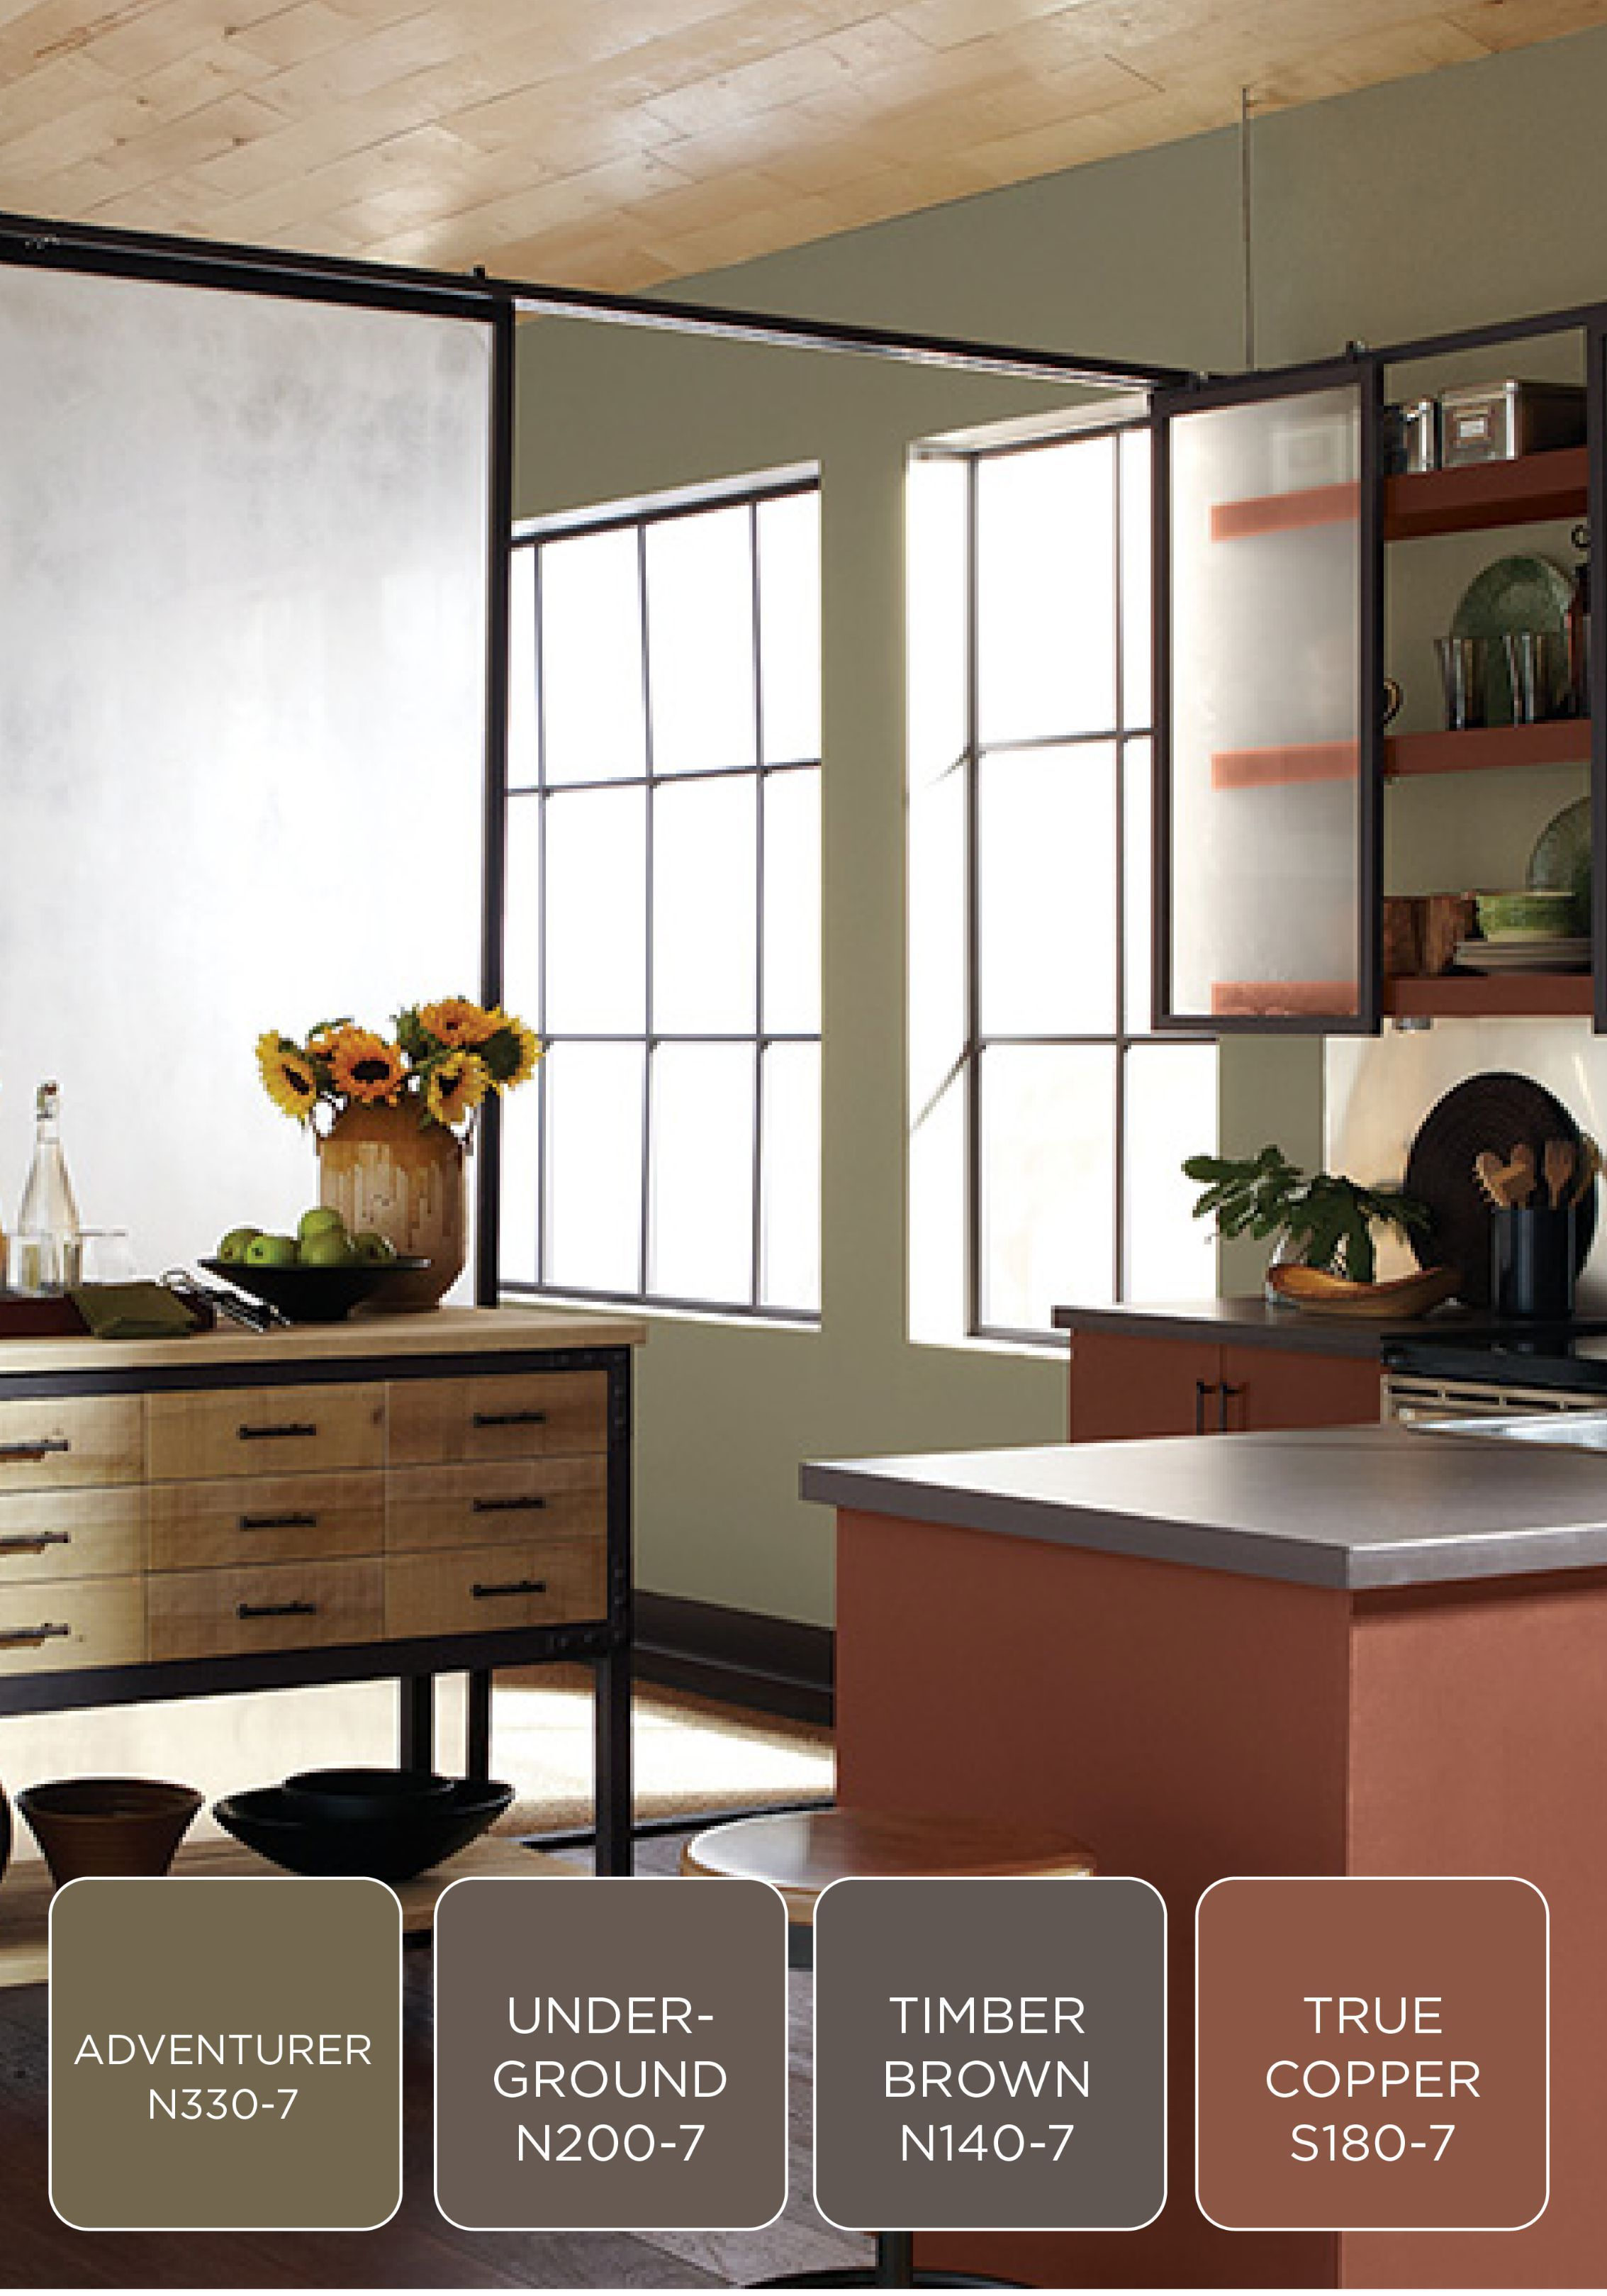 Give your kitchen a modern and earthy update with BEHR paint in ...